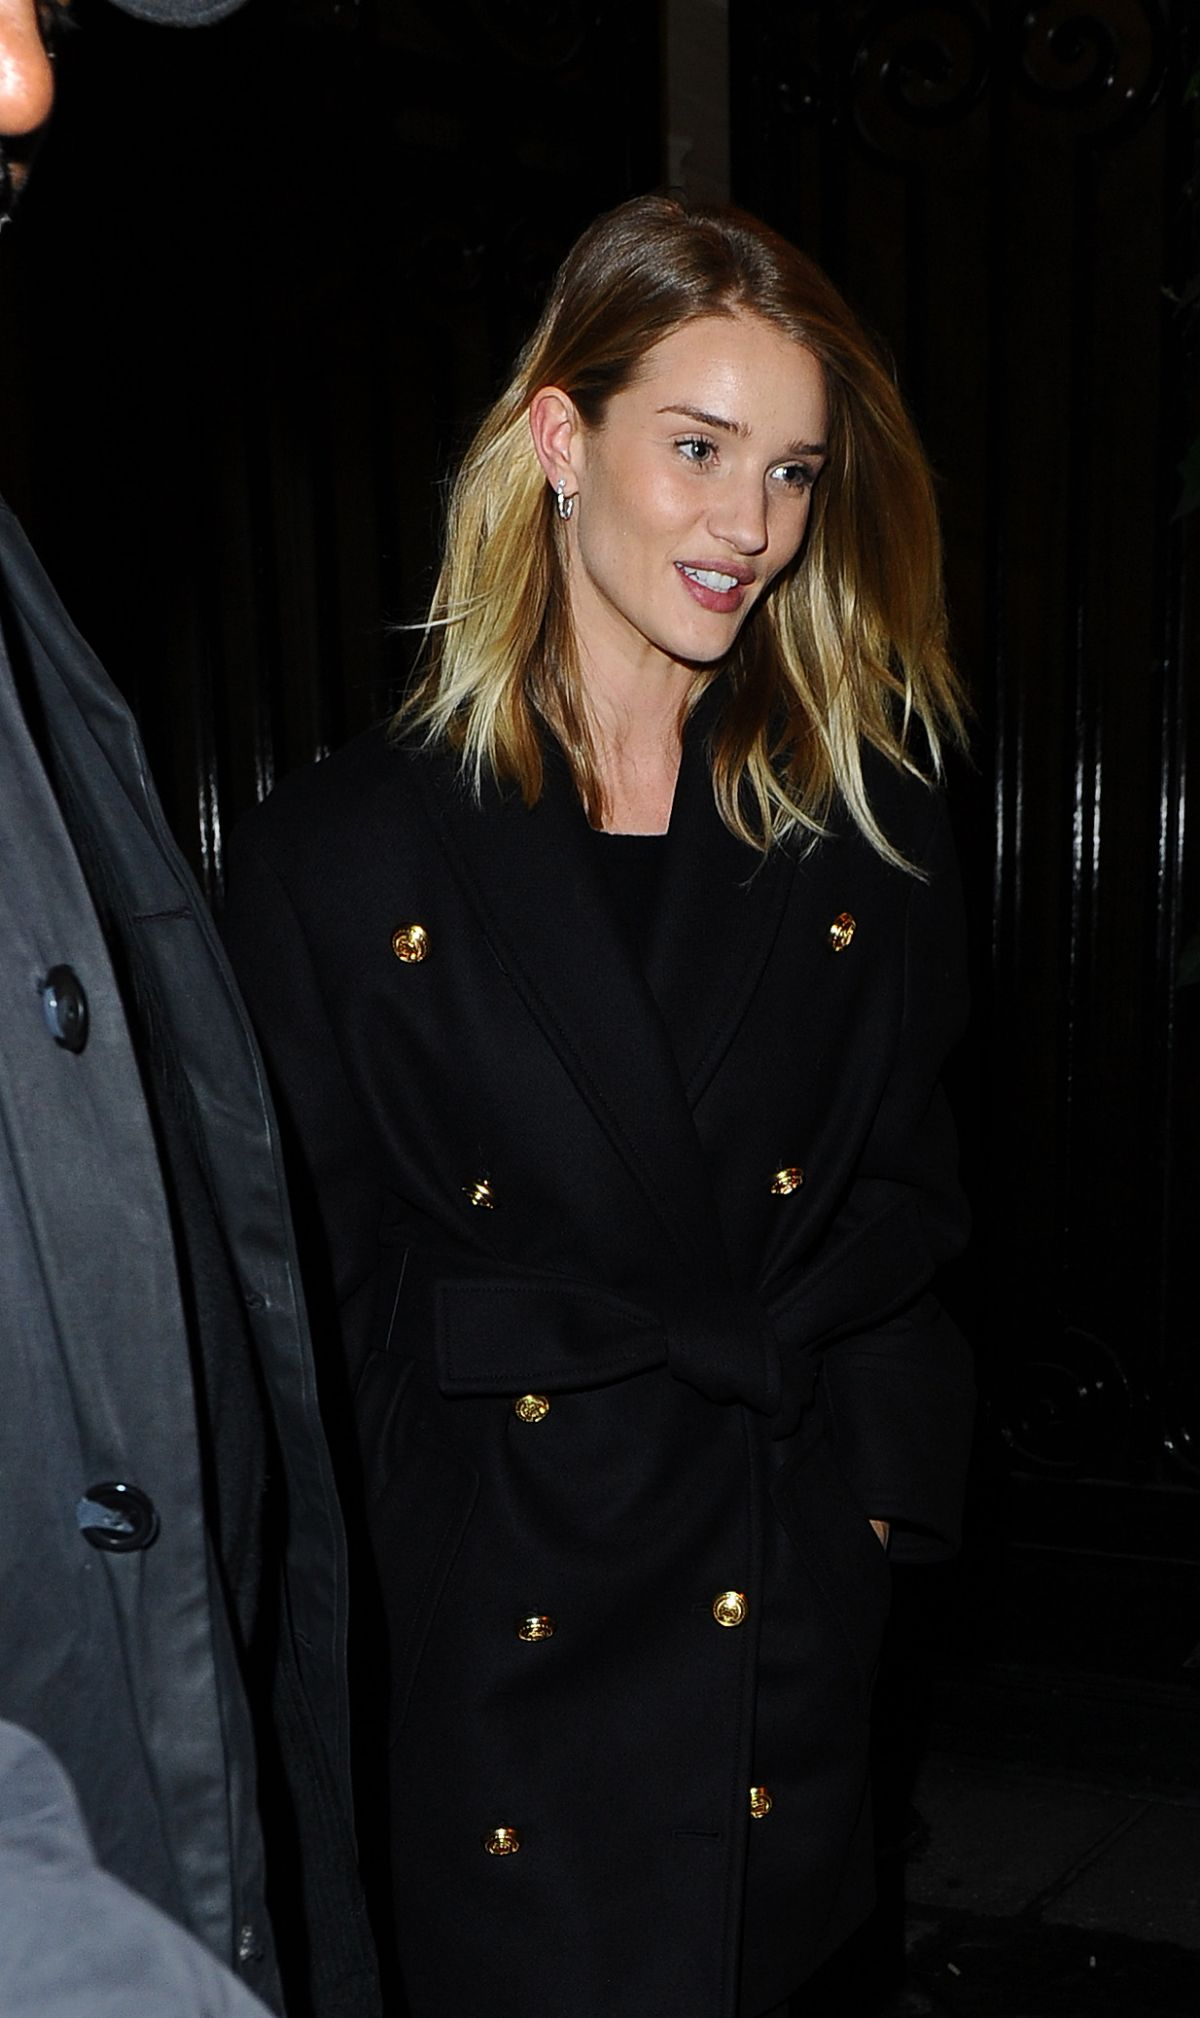 Rosie Huntington-Whiteley Archives - Page 7 of 29 - HawtCelebs ... Rosie Huntington Whiteley